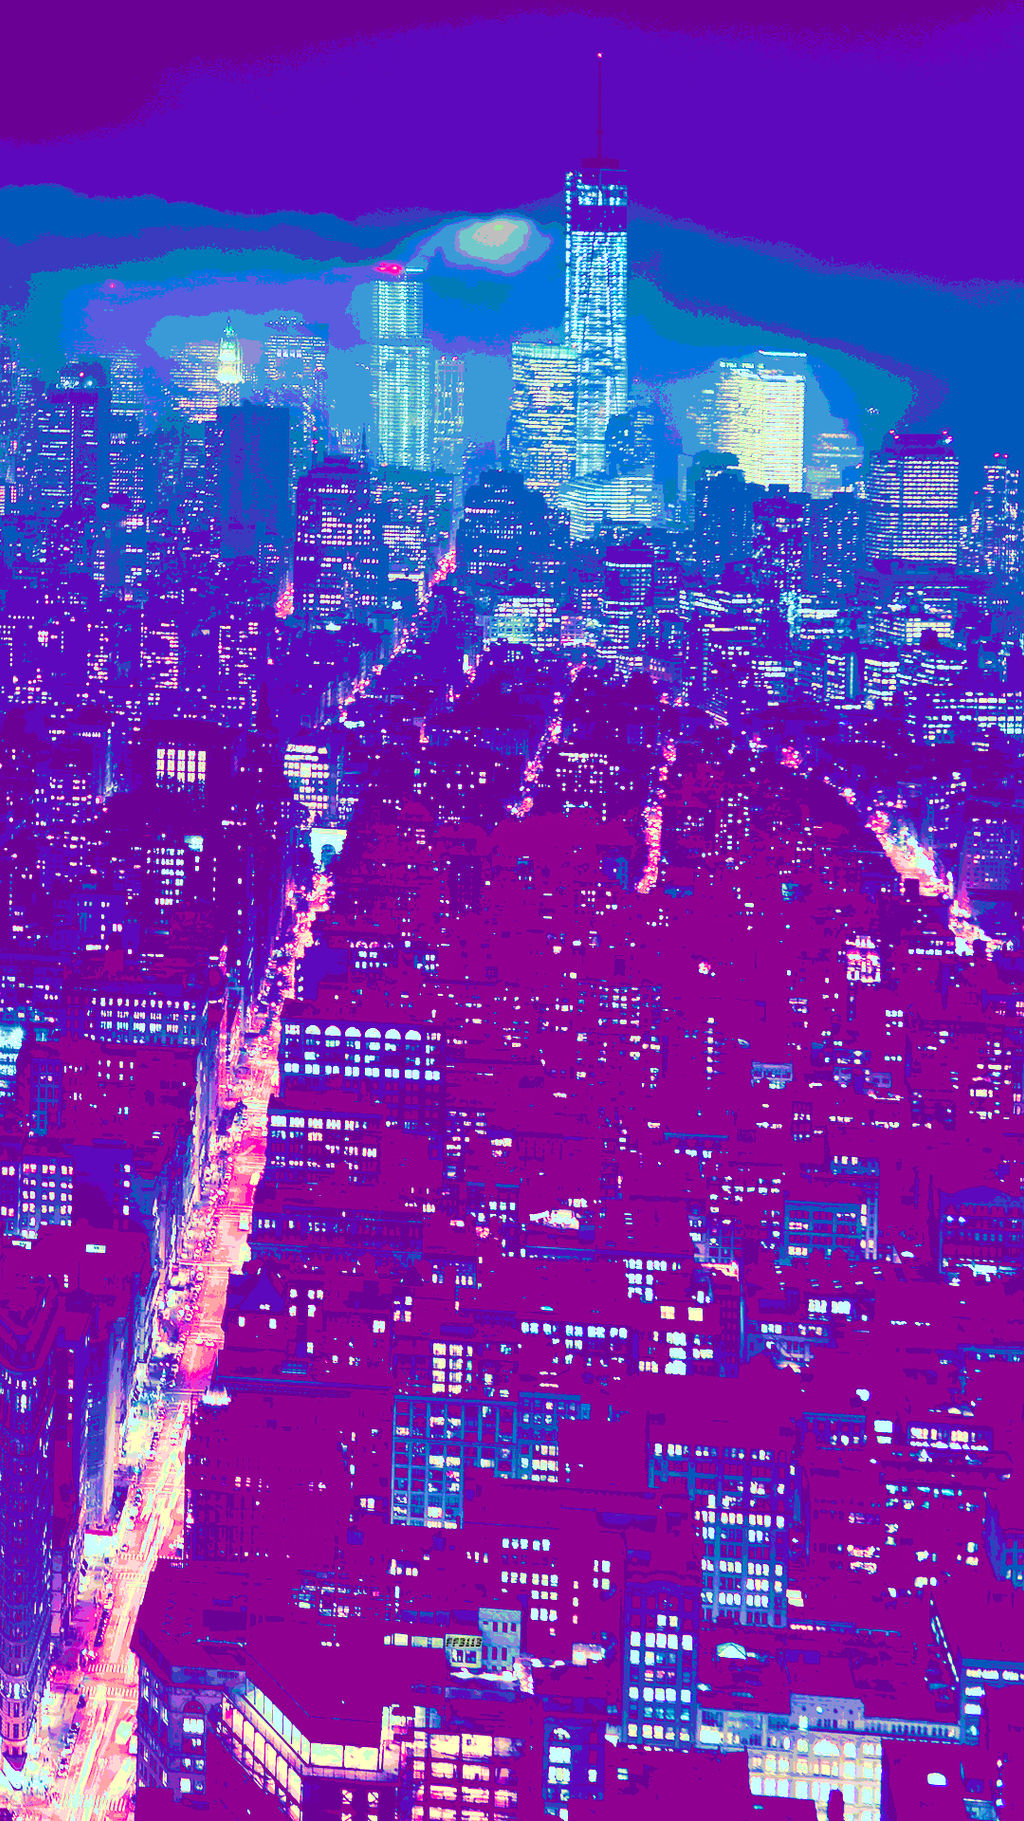 Aesthetic Phone Wallpaper City At Night By Ff3113 On Deviantart